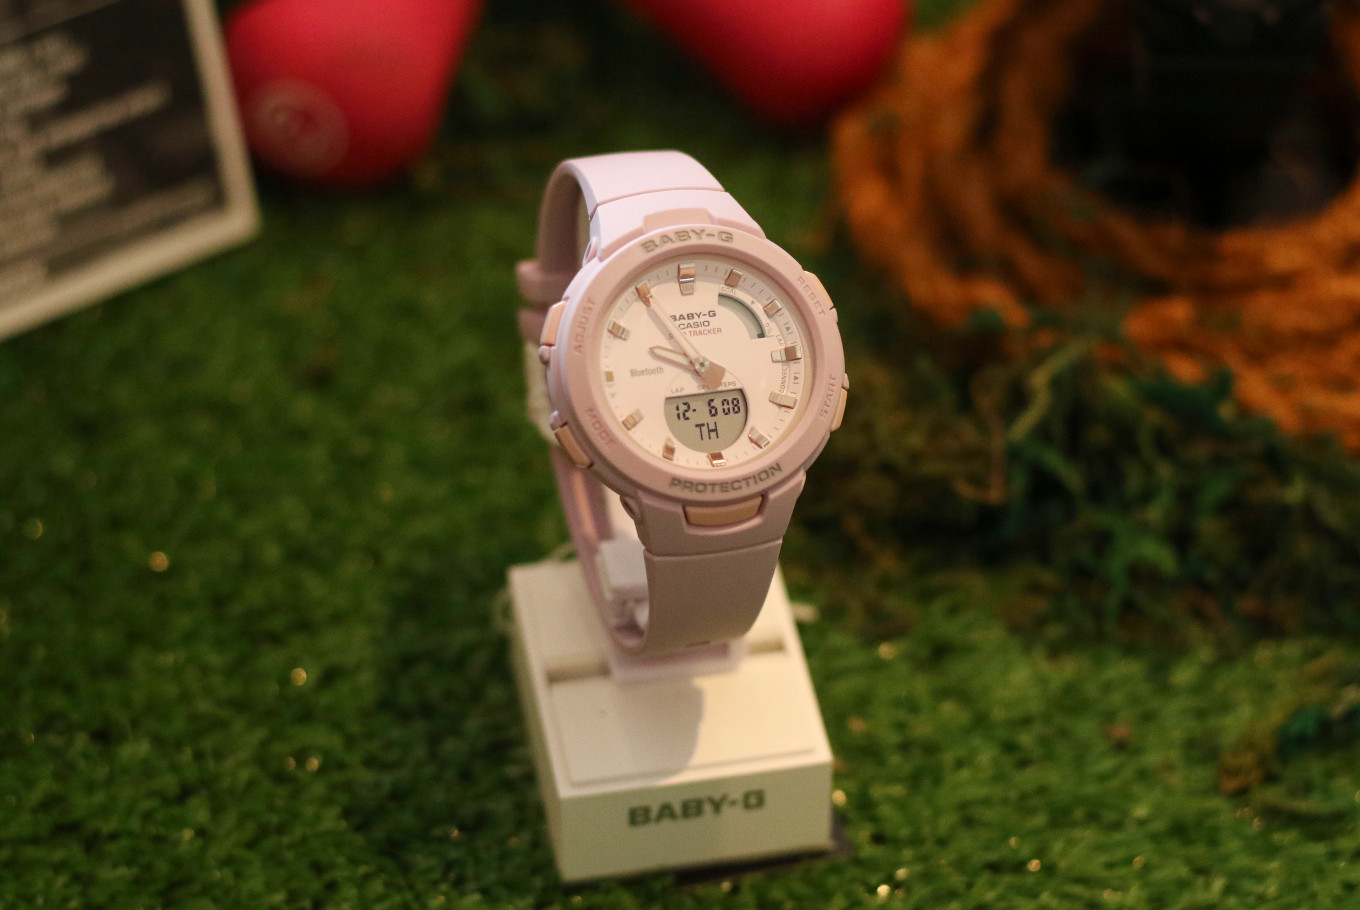 Smarter Casio watches arrive in Indonesia